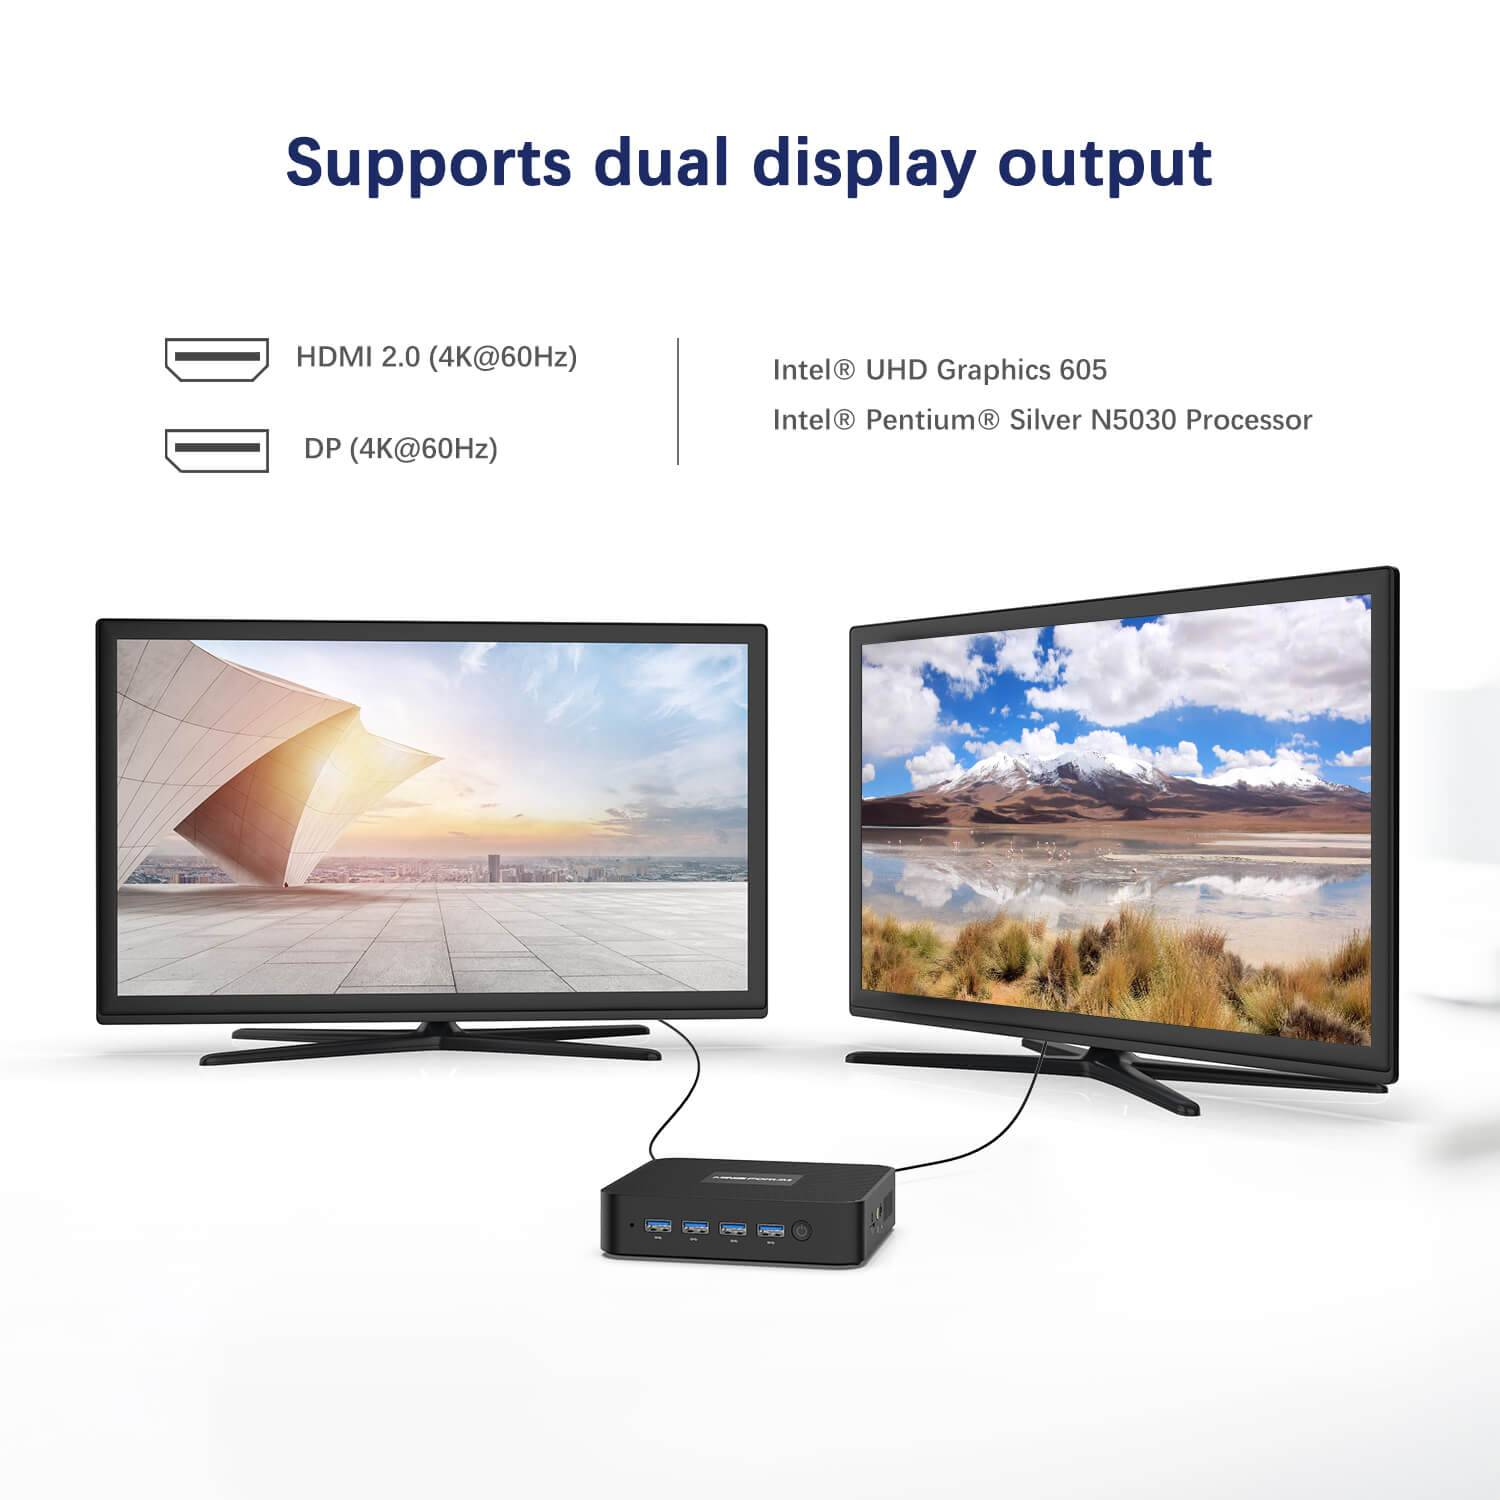 MinisForum GK50 Windows Mini PC for Home or Office - Showing dual display output